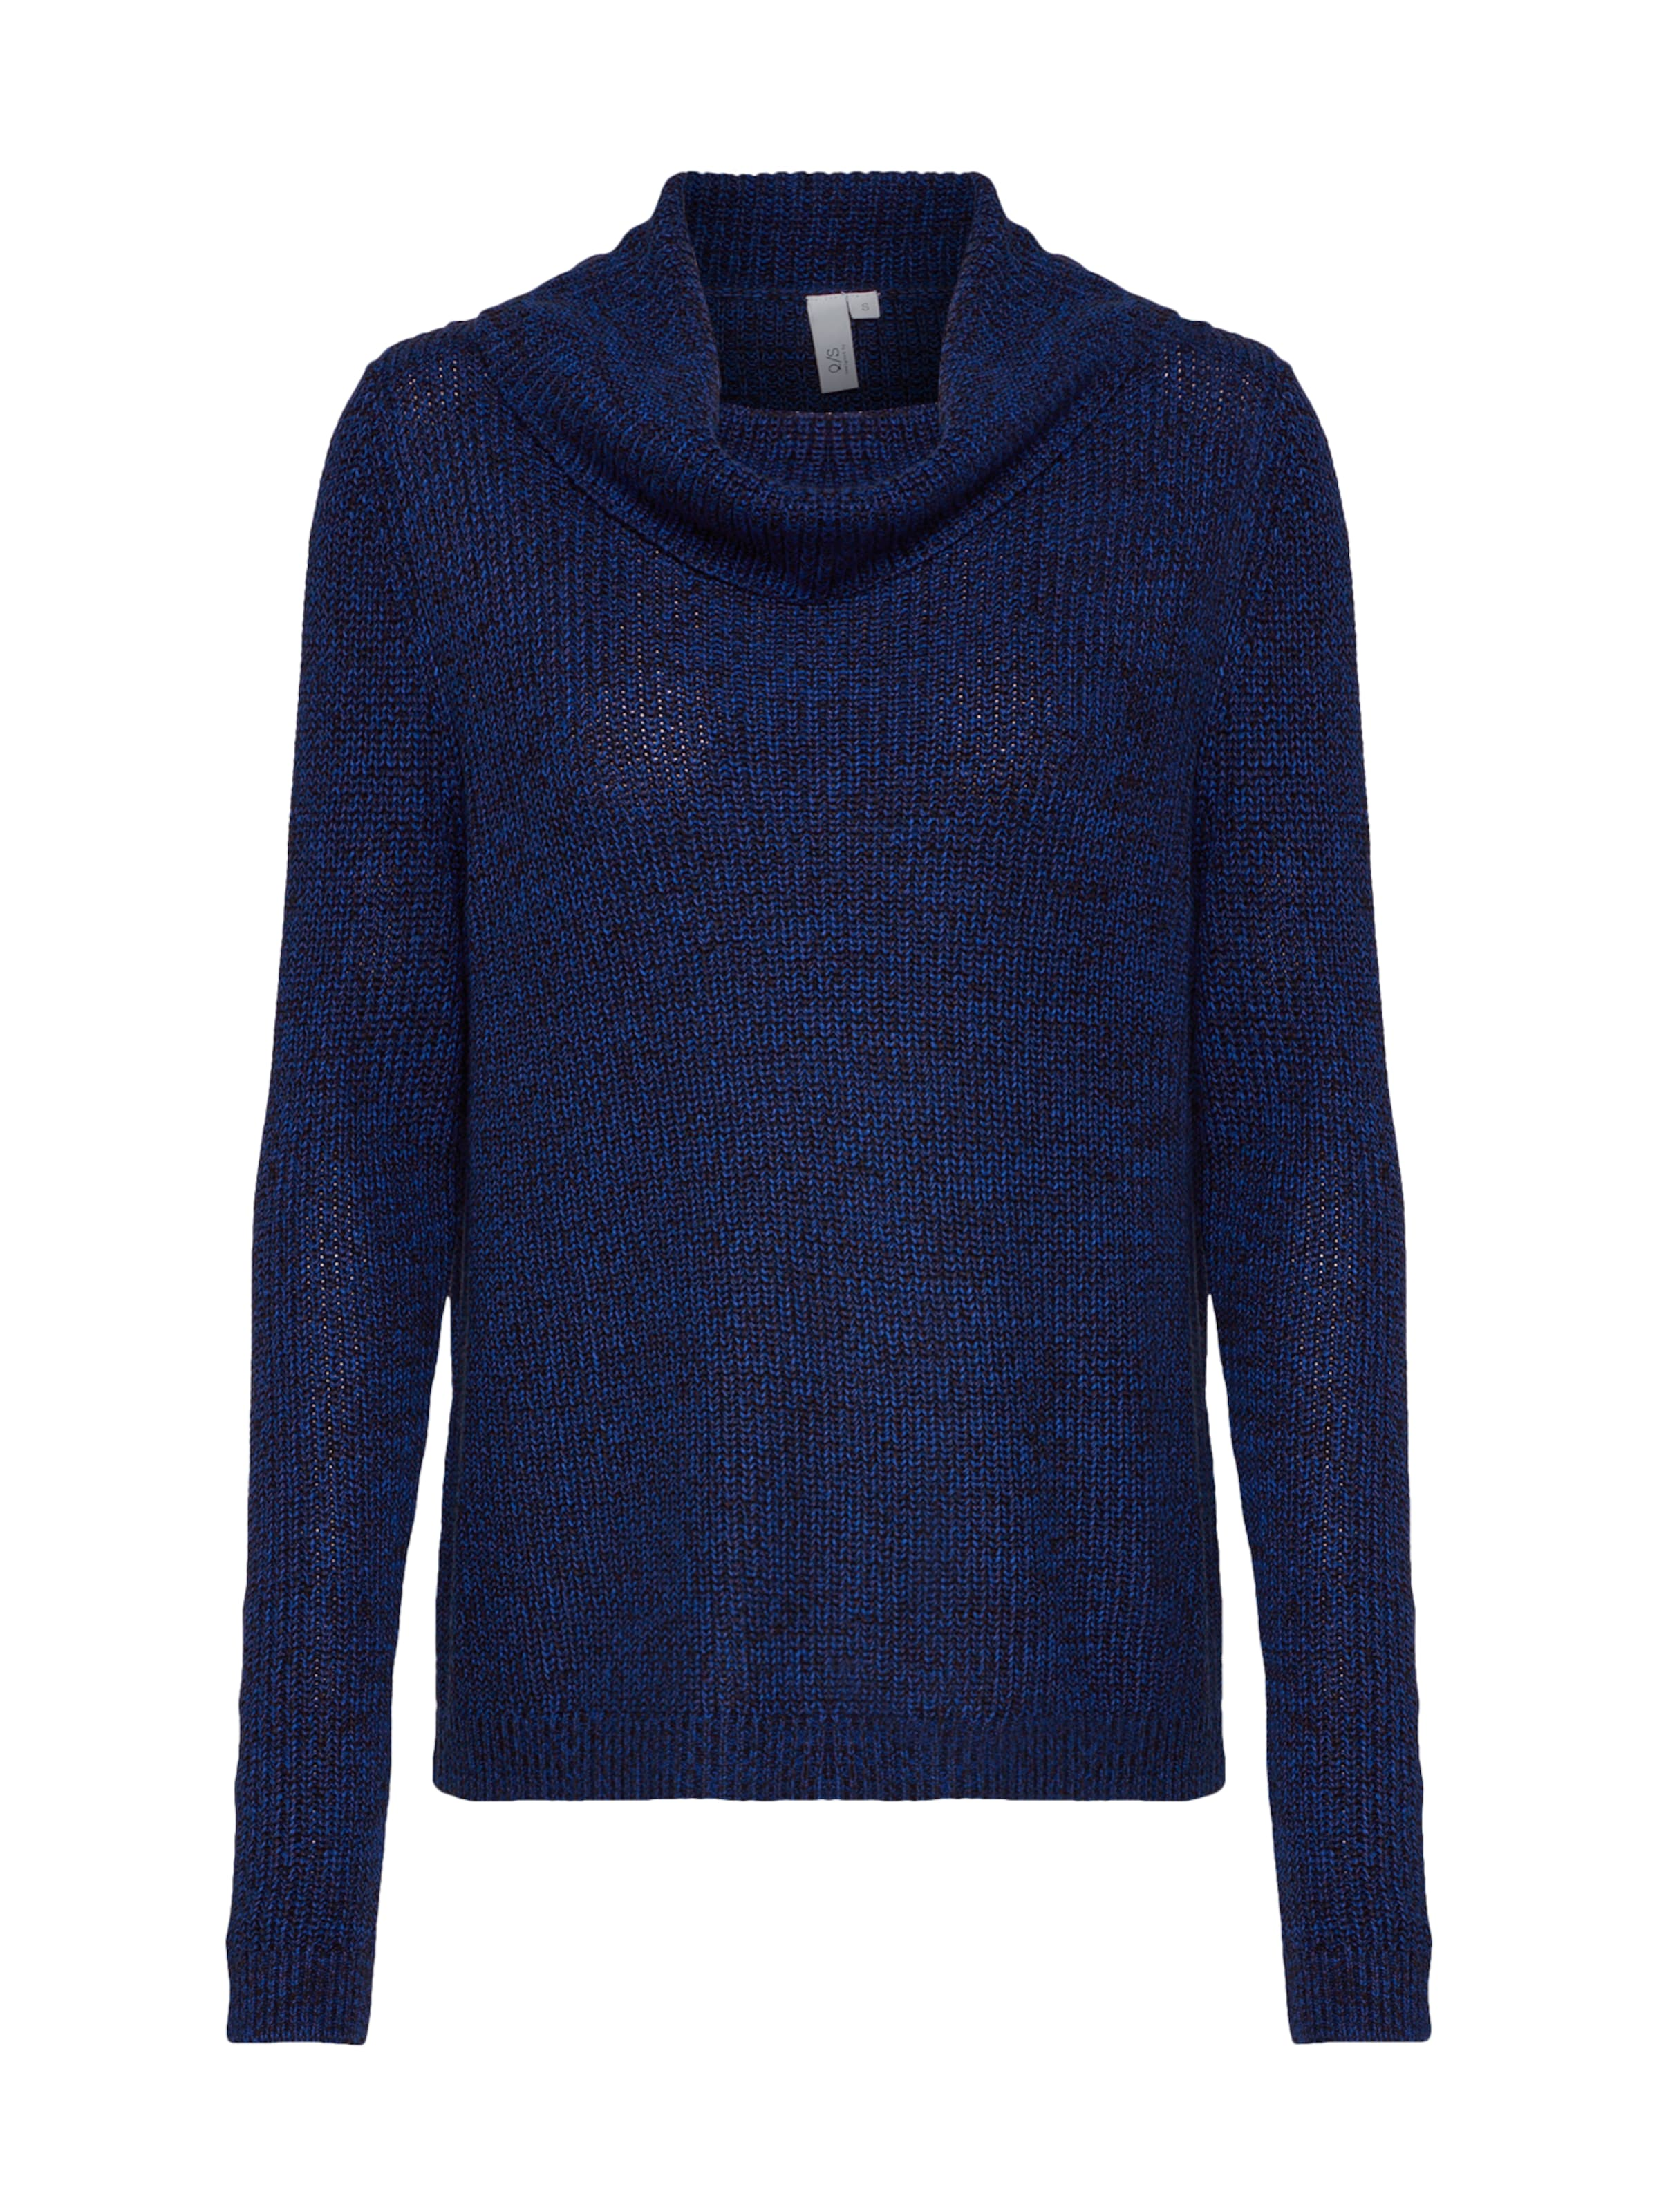 By Designed Q Pullover In Royalblau s DH2WEIY9